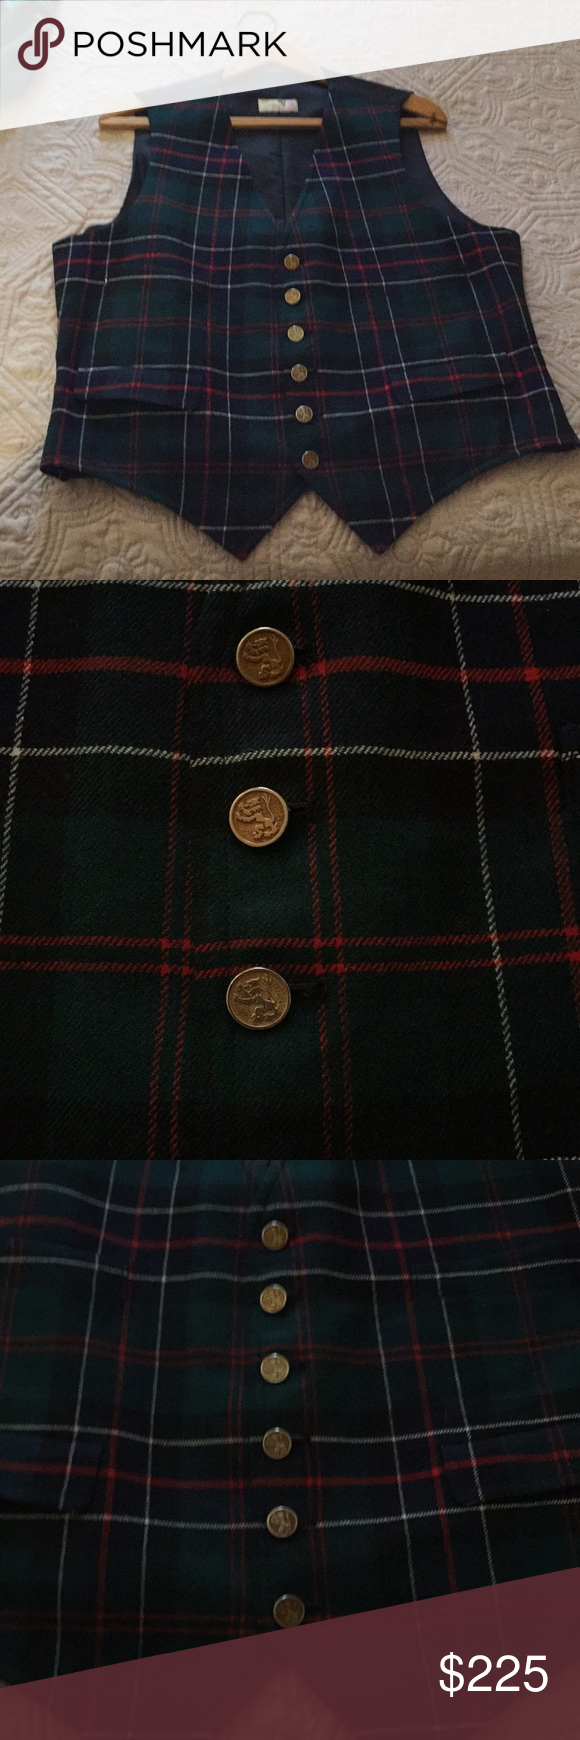 Vintage From The Scotch House Vest The Famous Scotch House Made Vintage Vest Directly From England And Dads Closet Three Pocket Ves Vintage Vest